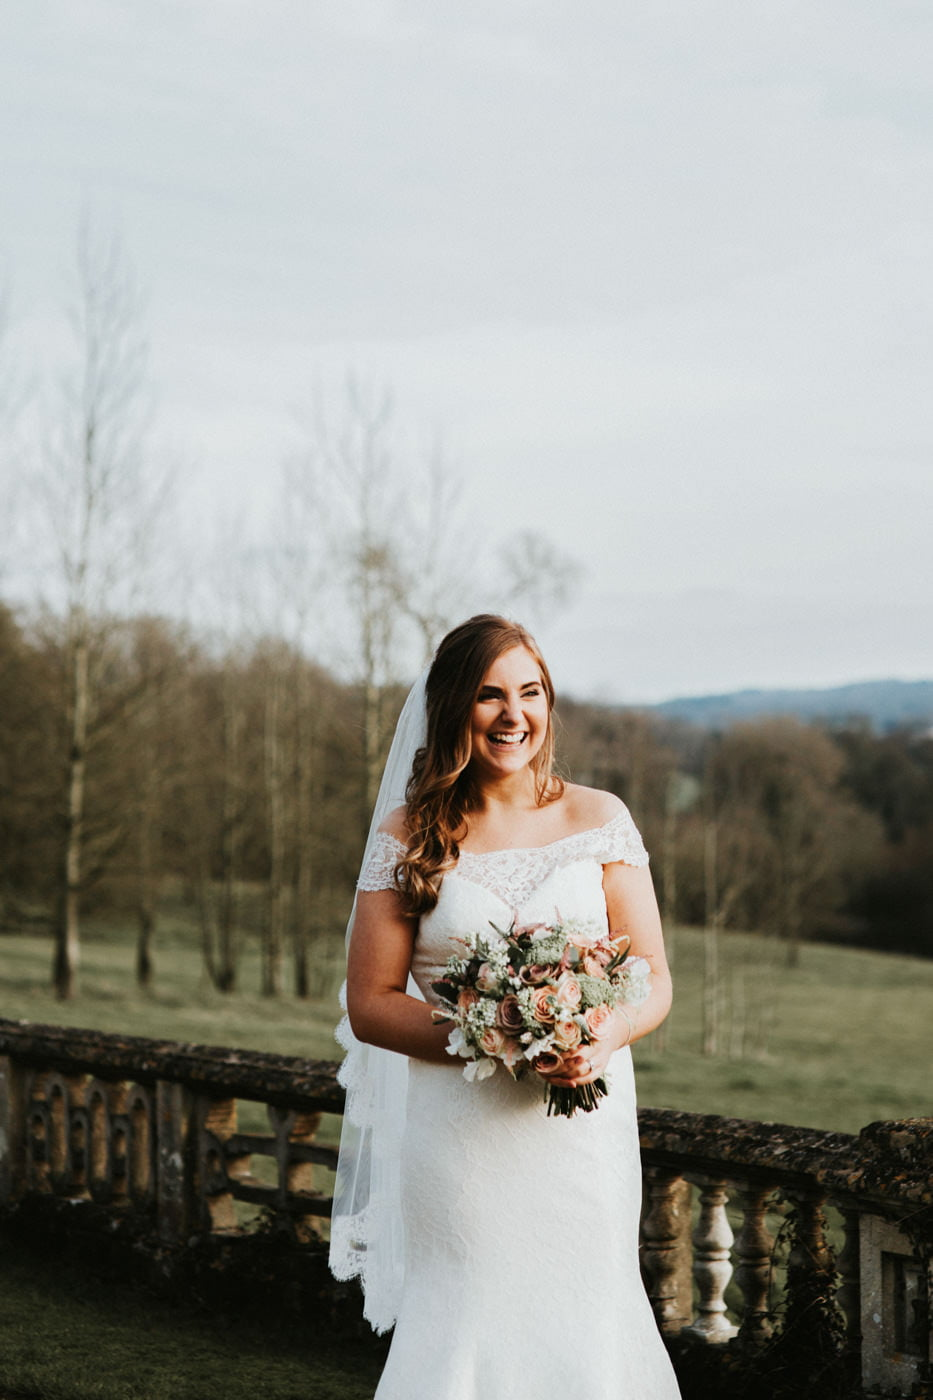 Chloe and Lewis, Orchardleigh House, Somerset 16